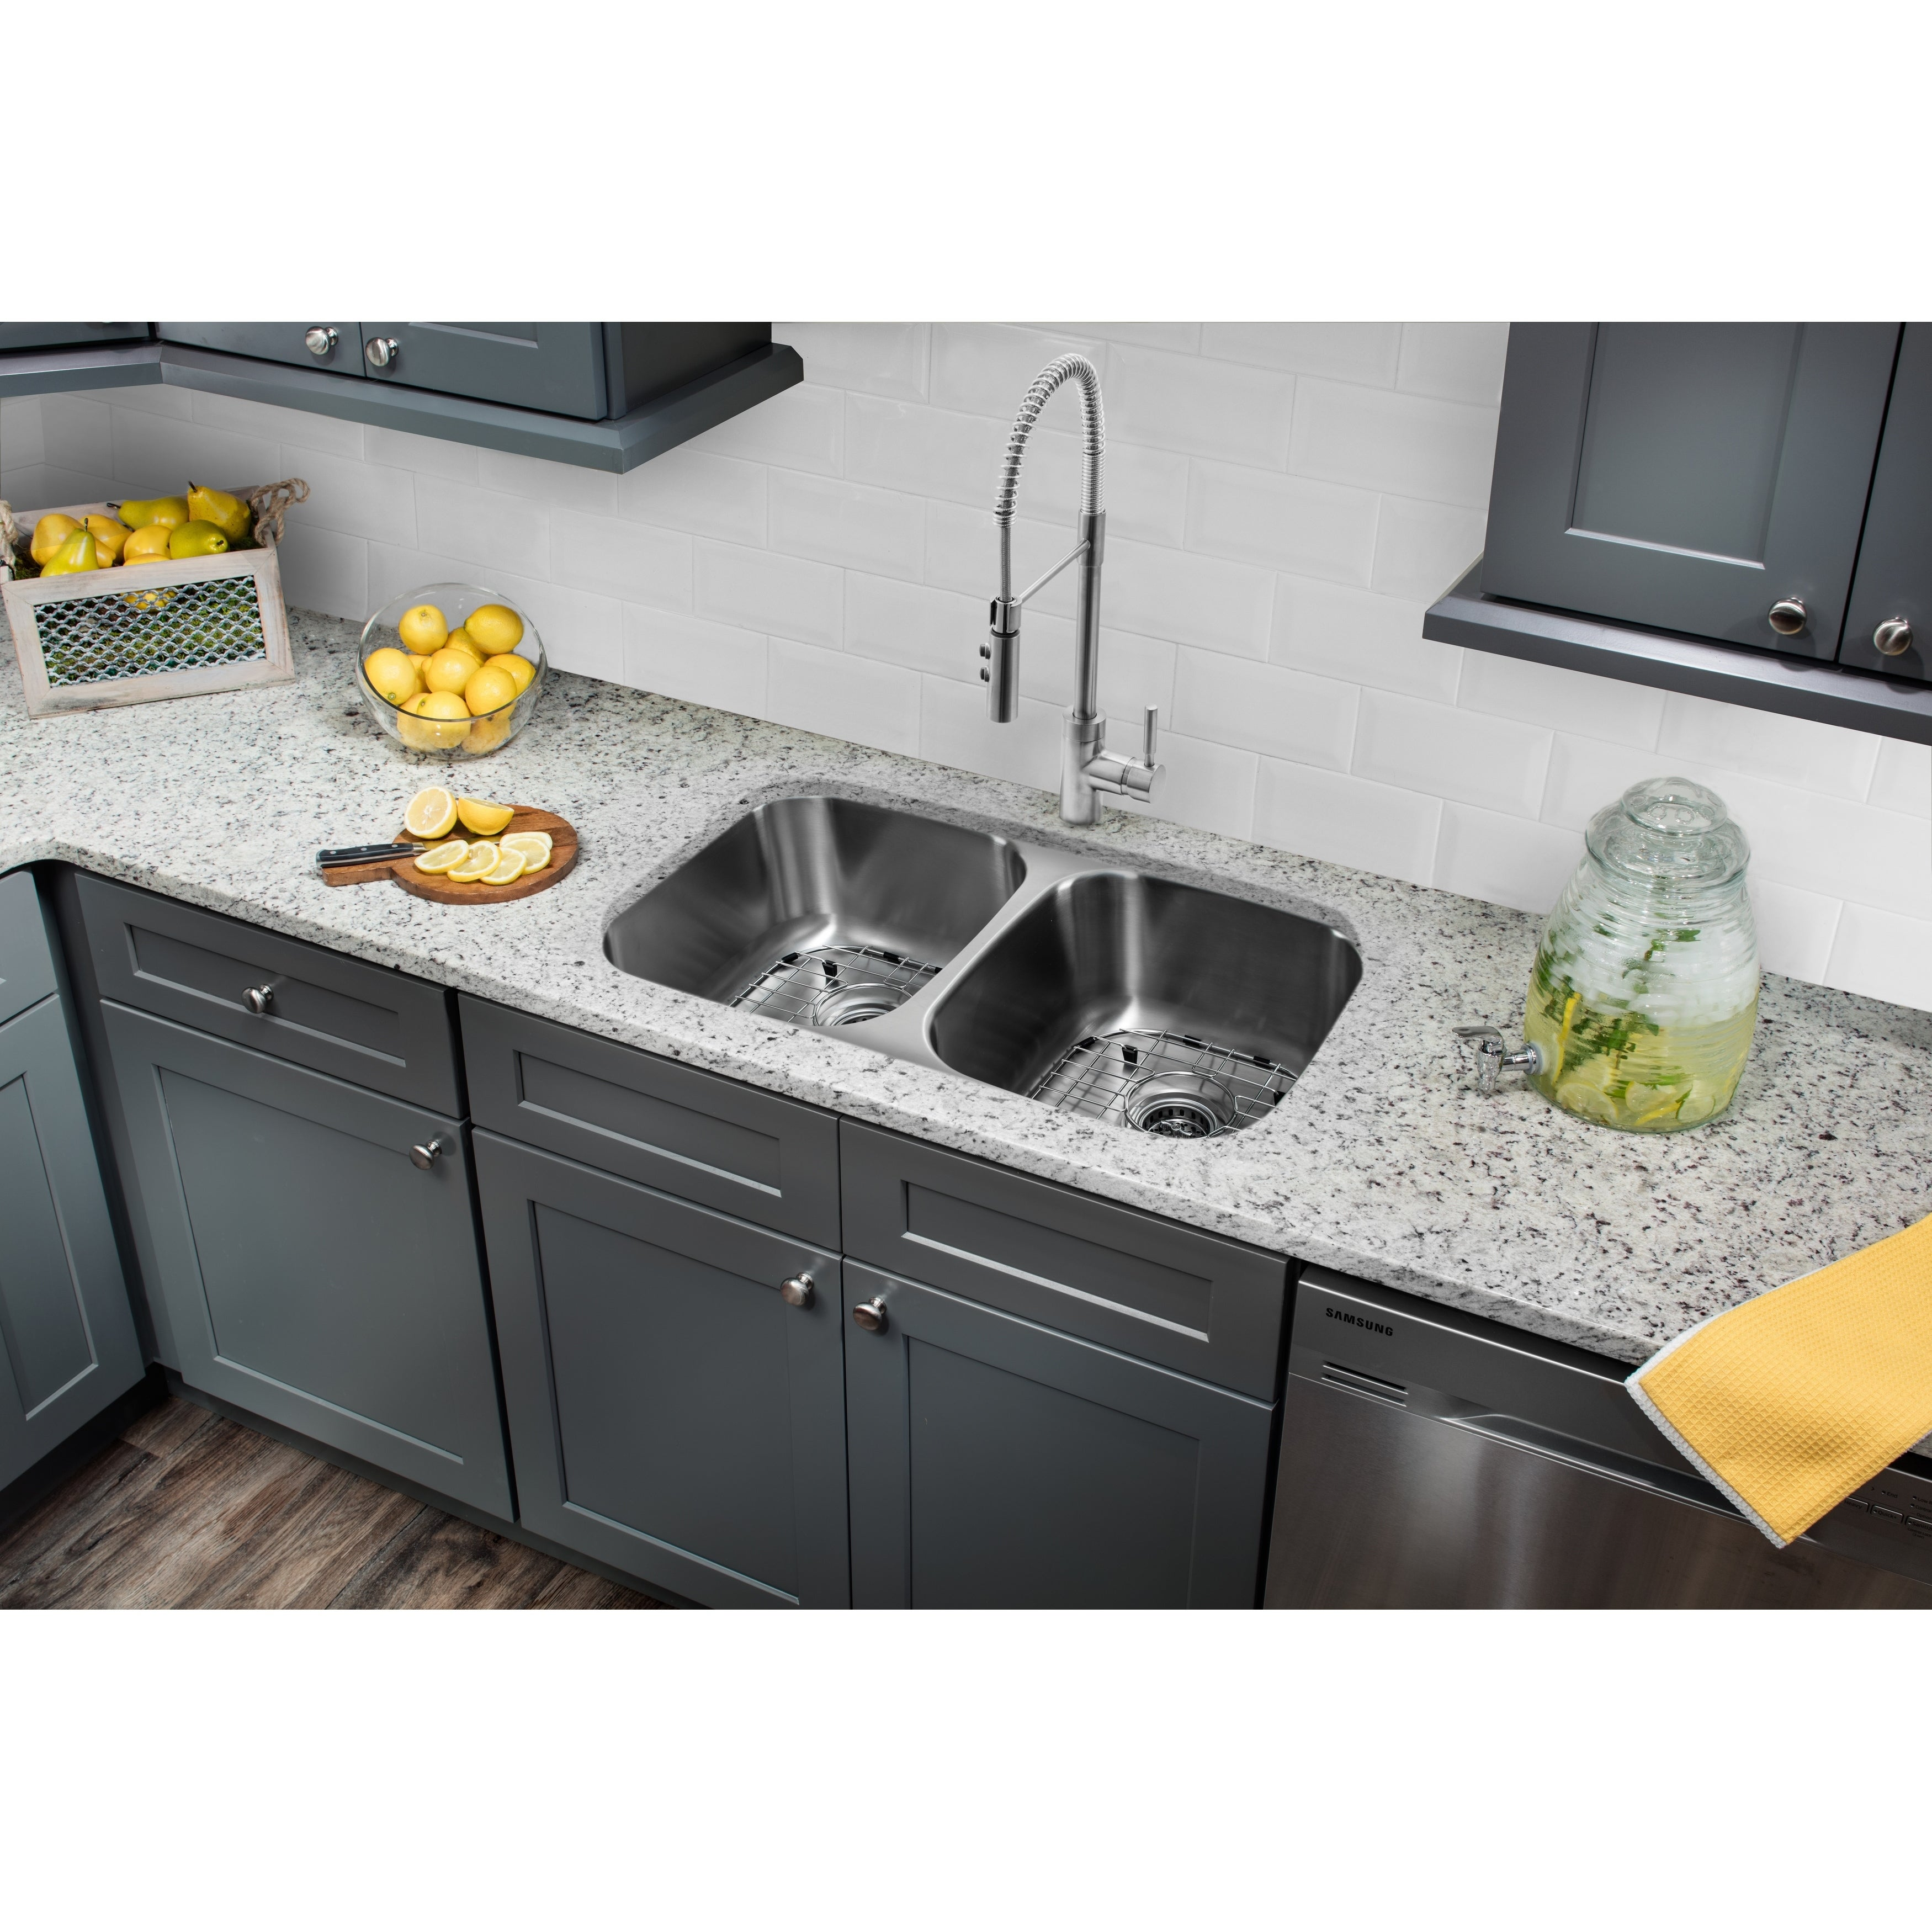 29-1/8 in. 50/50 Stainless Steel Kitchen Sink & Industrial Faucet